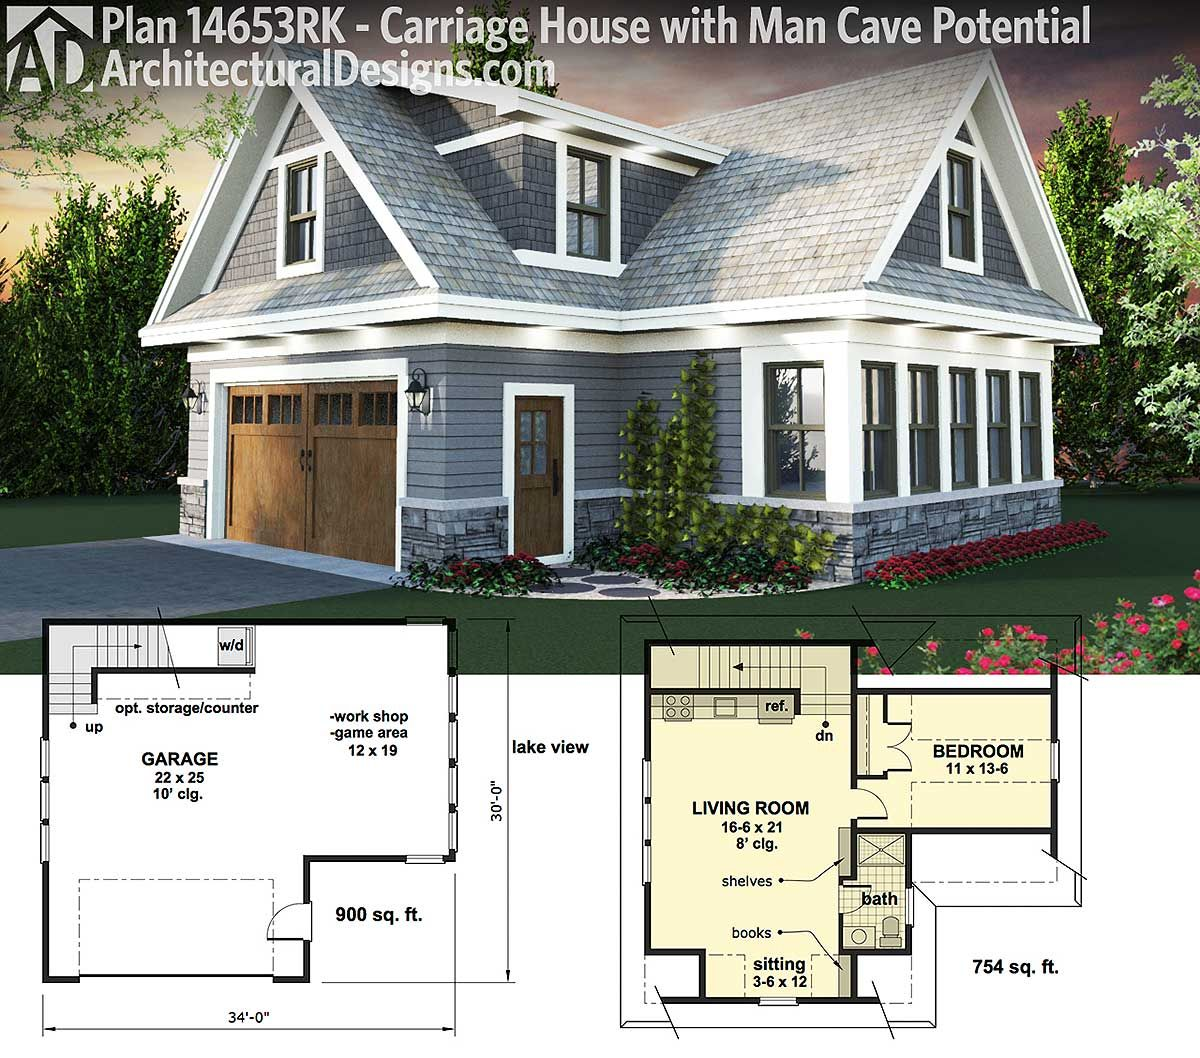 Architectural Designs Carriage House Plan 14653RK Use